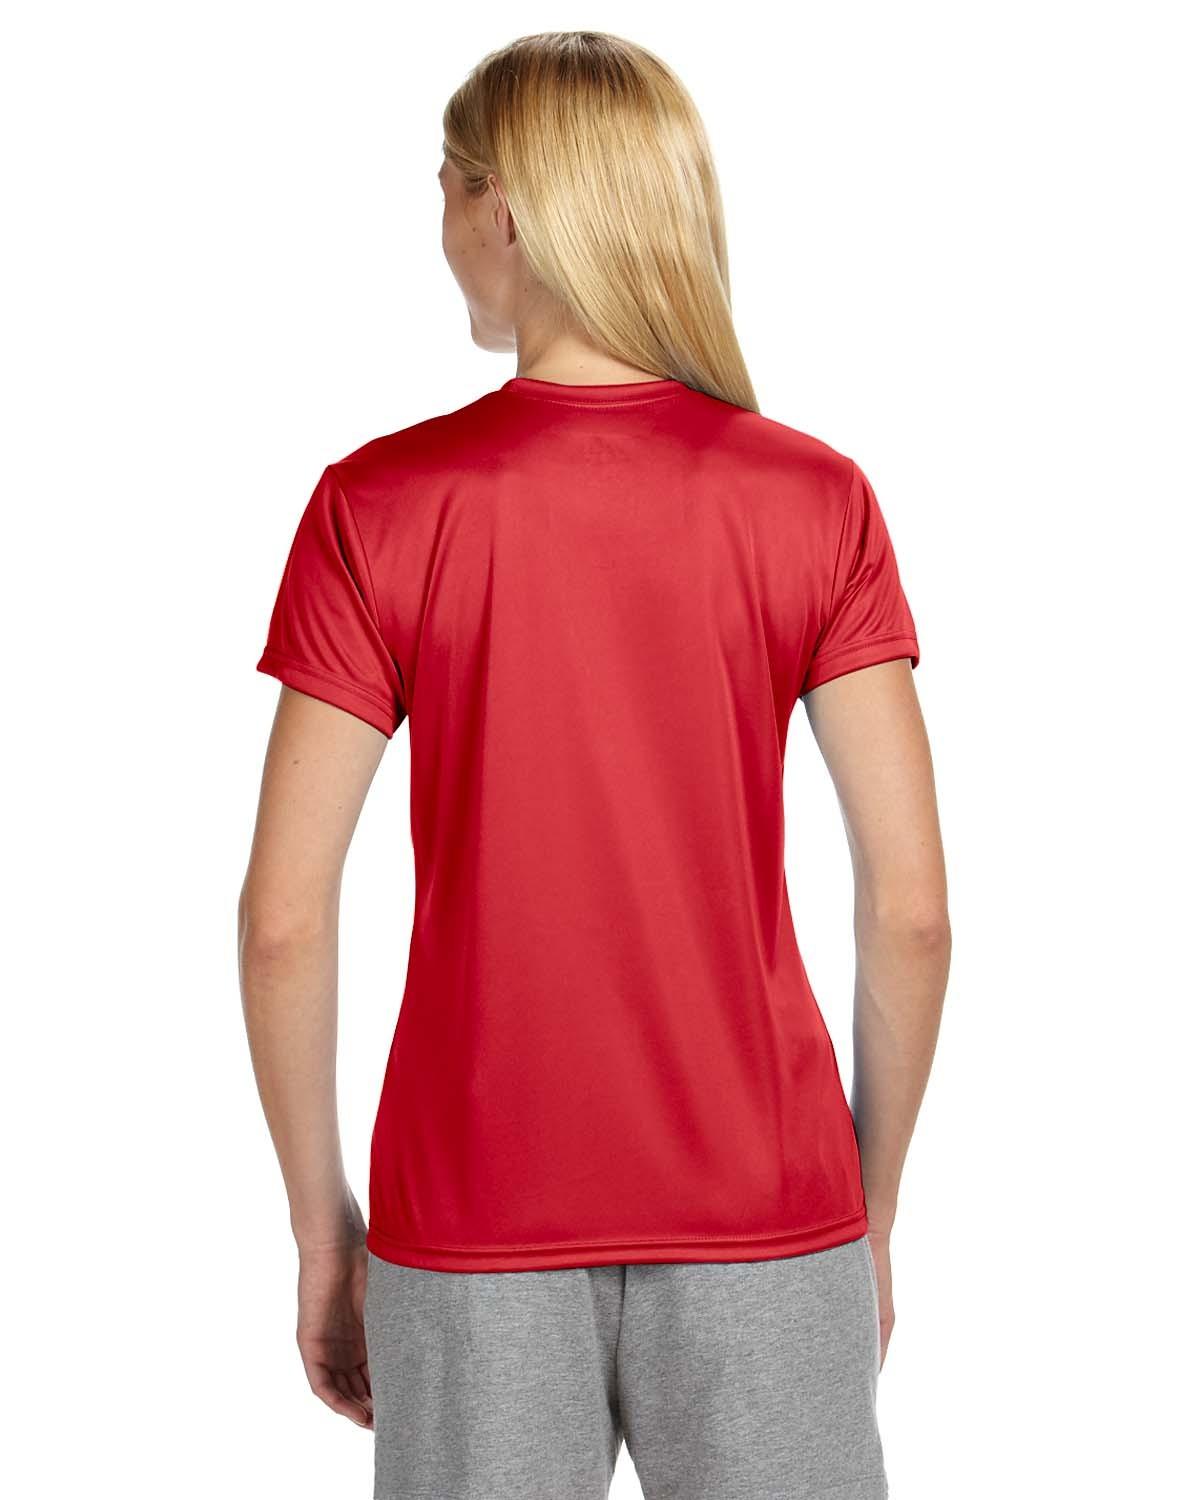 NW3201 A4 Apparel SCARLET